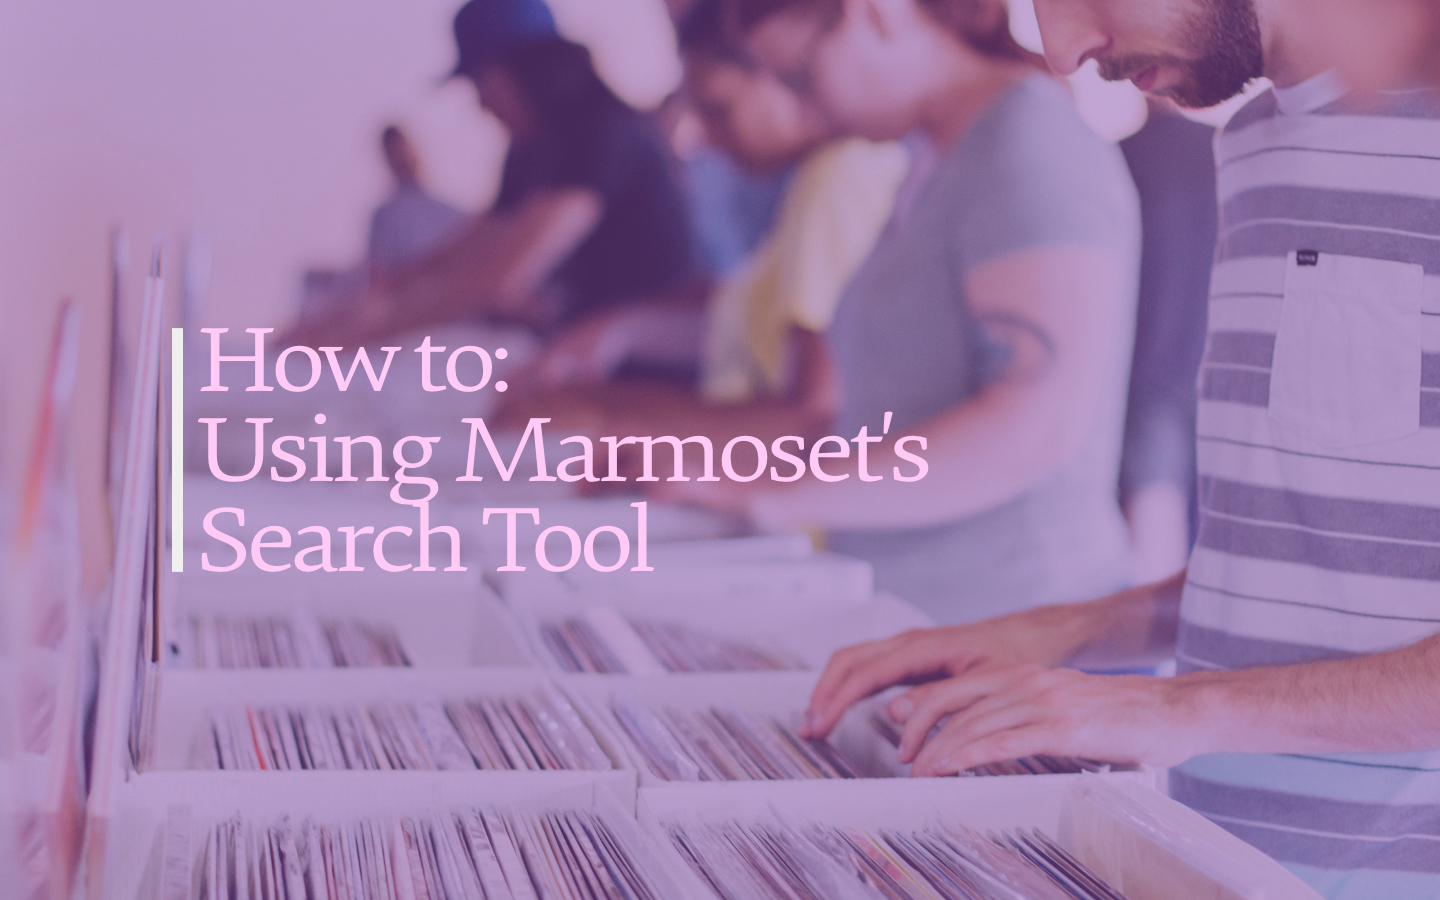 How to use Marmoset Search Tool.jpg